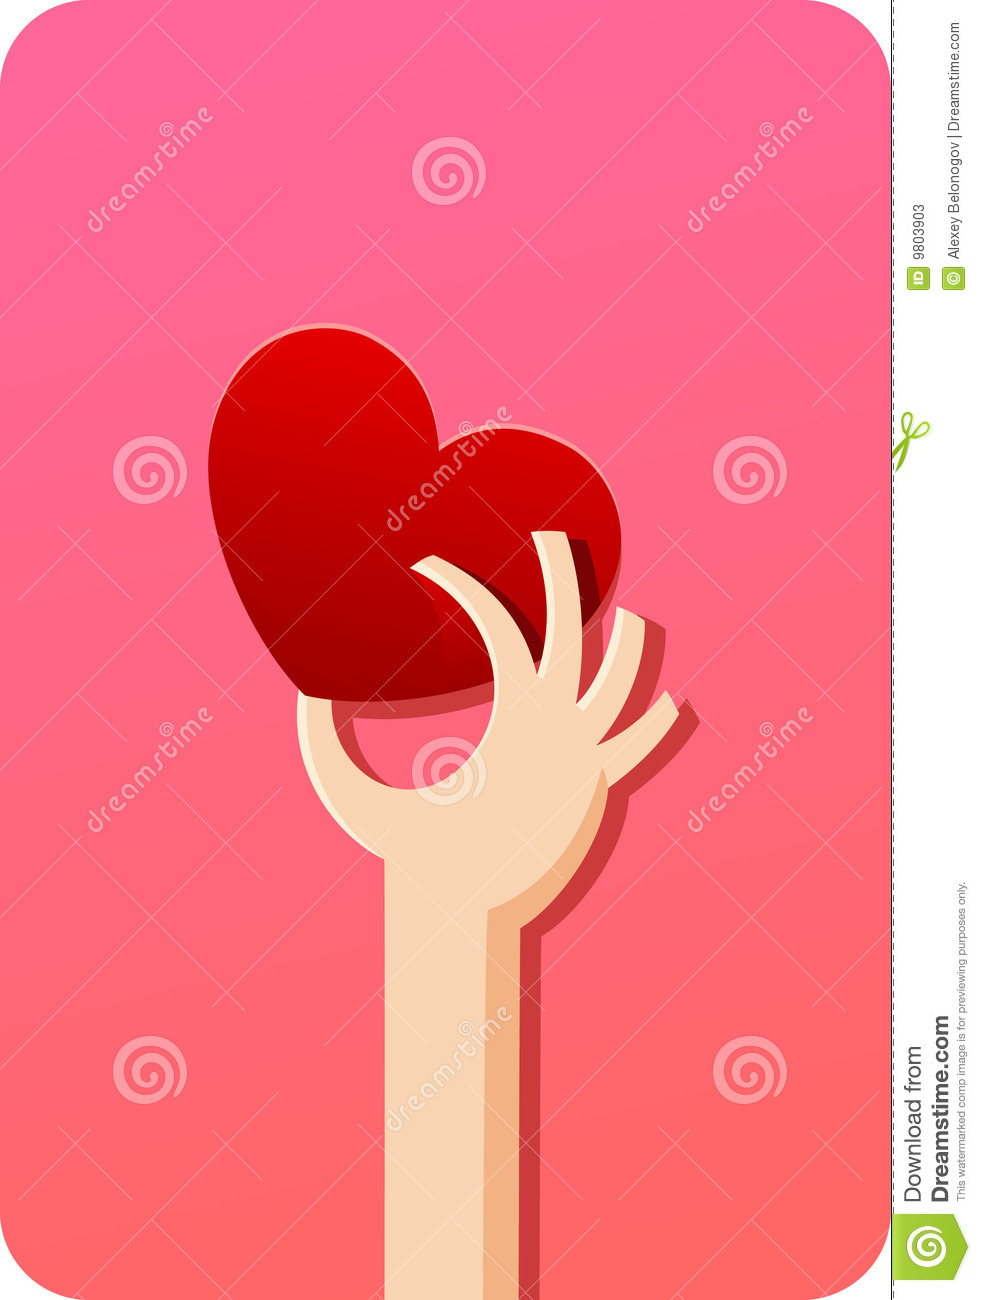 Human hand and heart | Concepts series